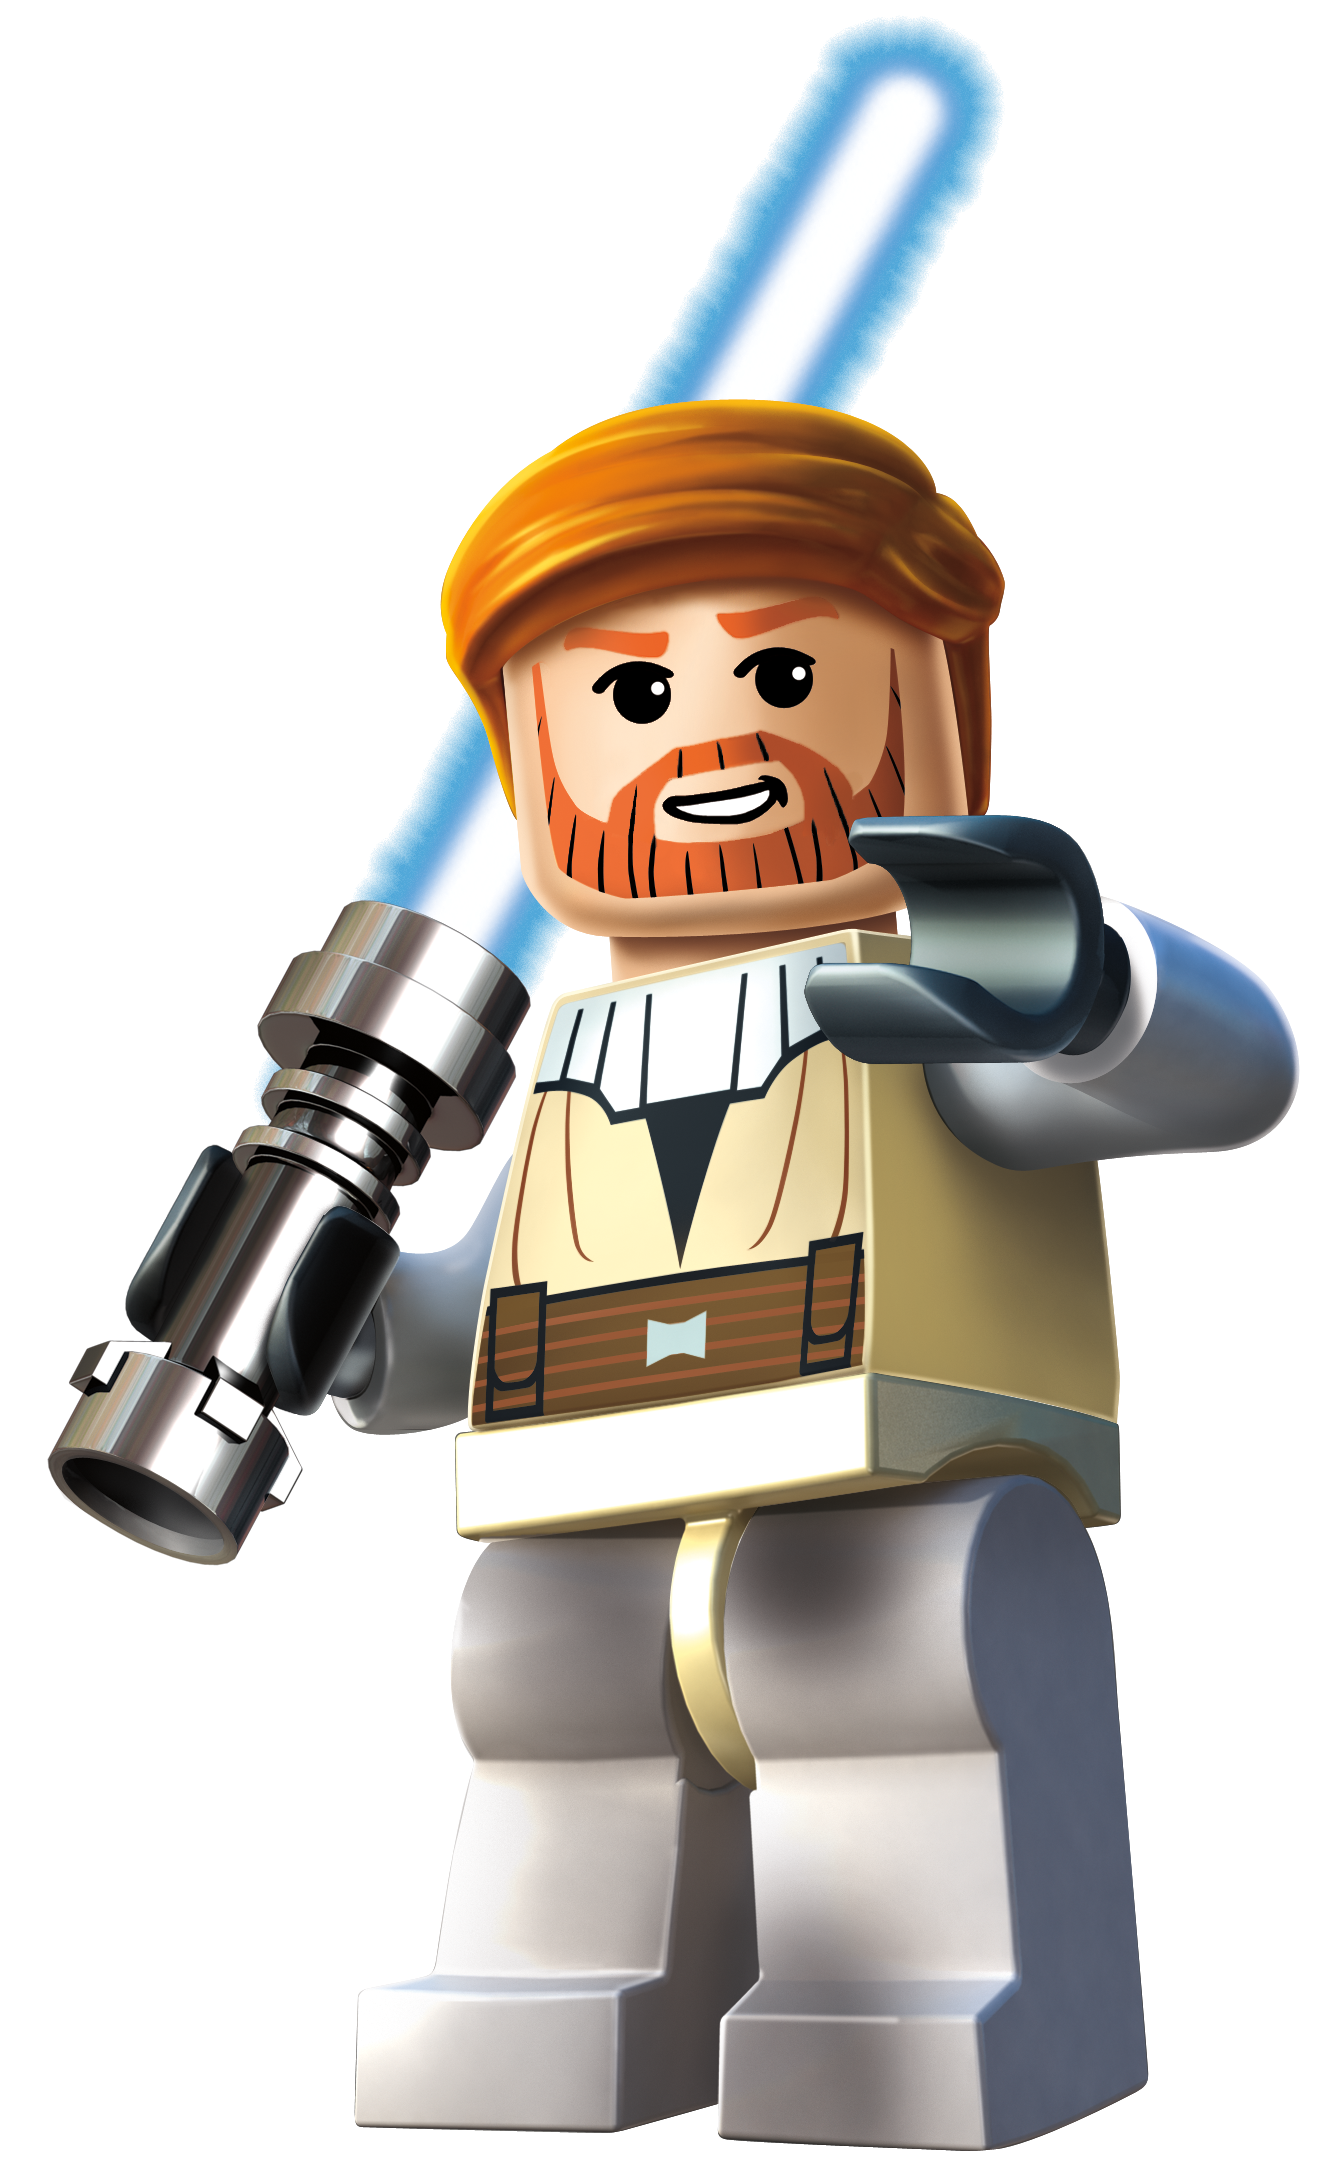 Lego star wars characters google search